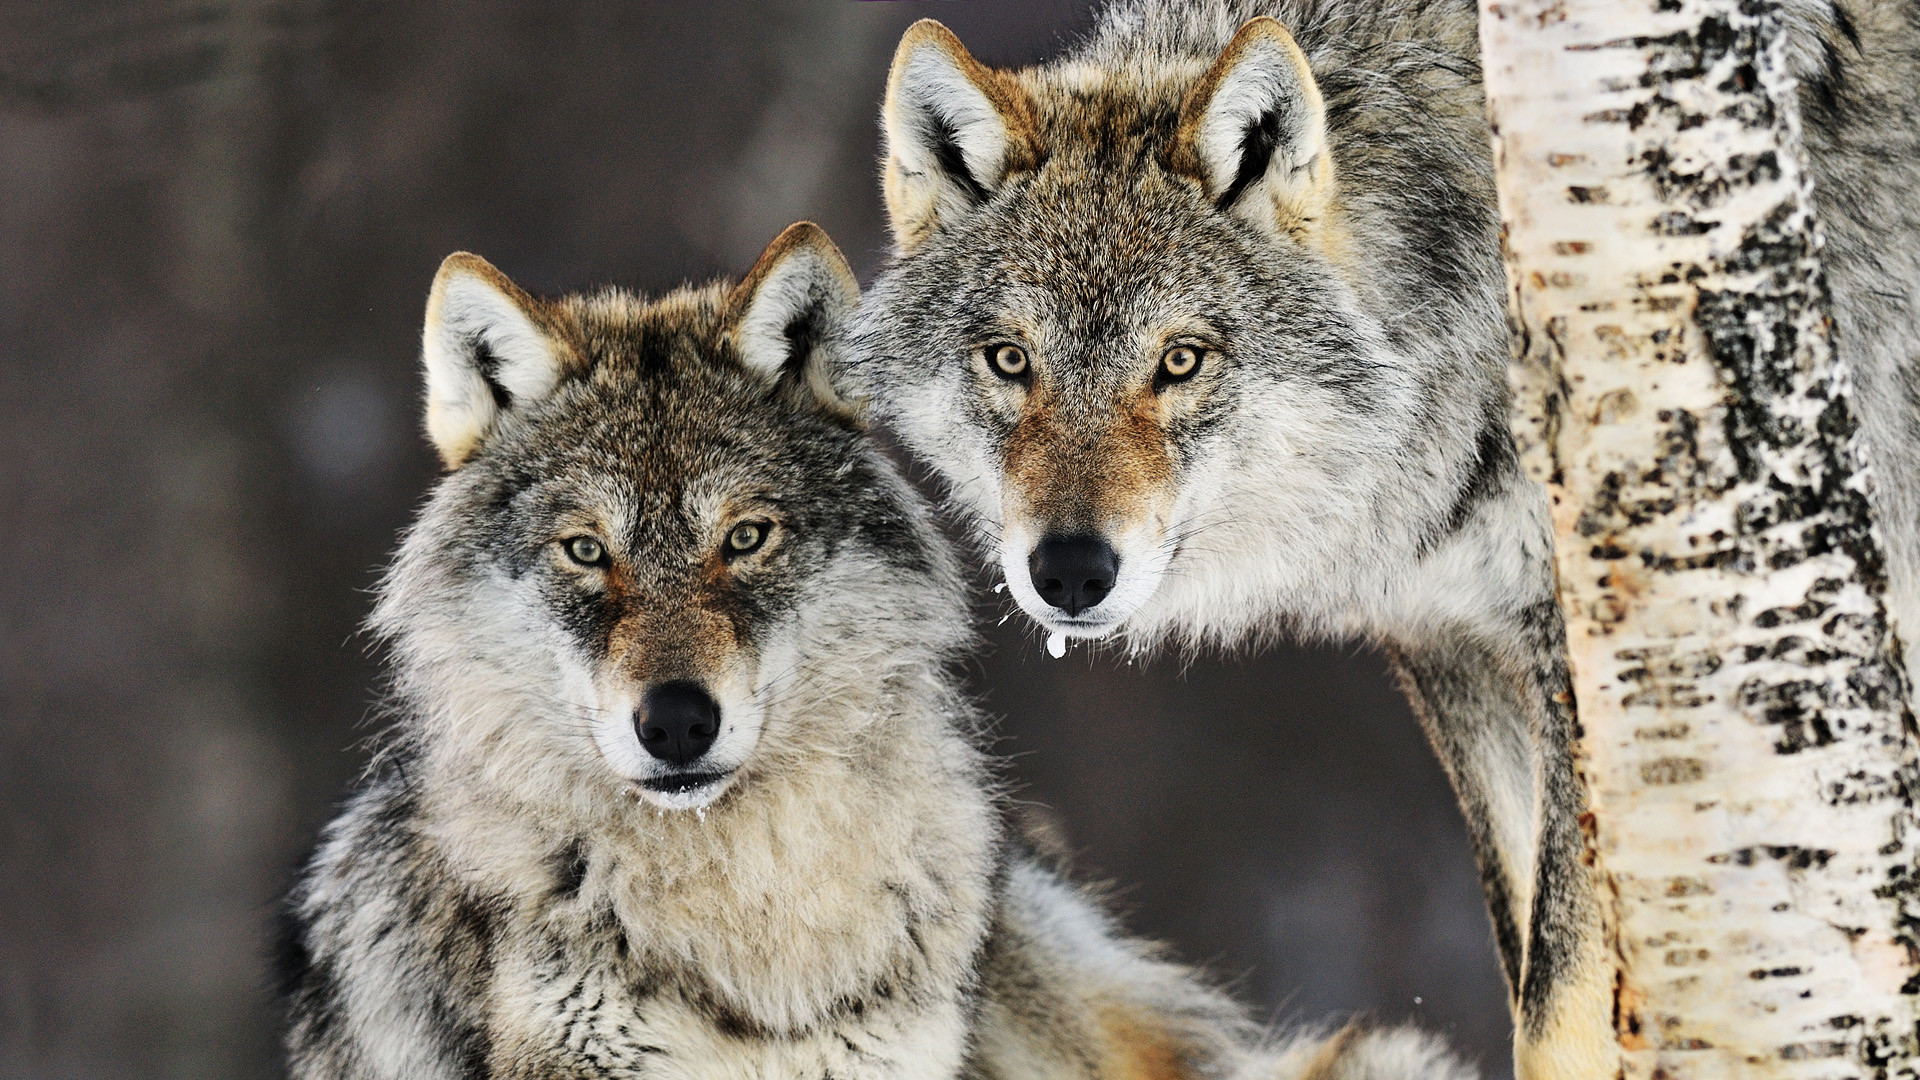 Wolf desktop wallpaper 1920x1080 69 images - Animal 1920x1080 ...